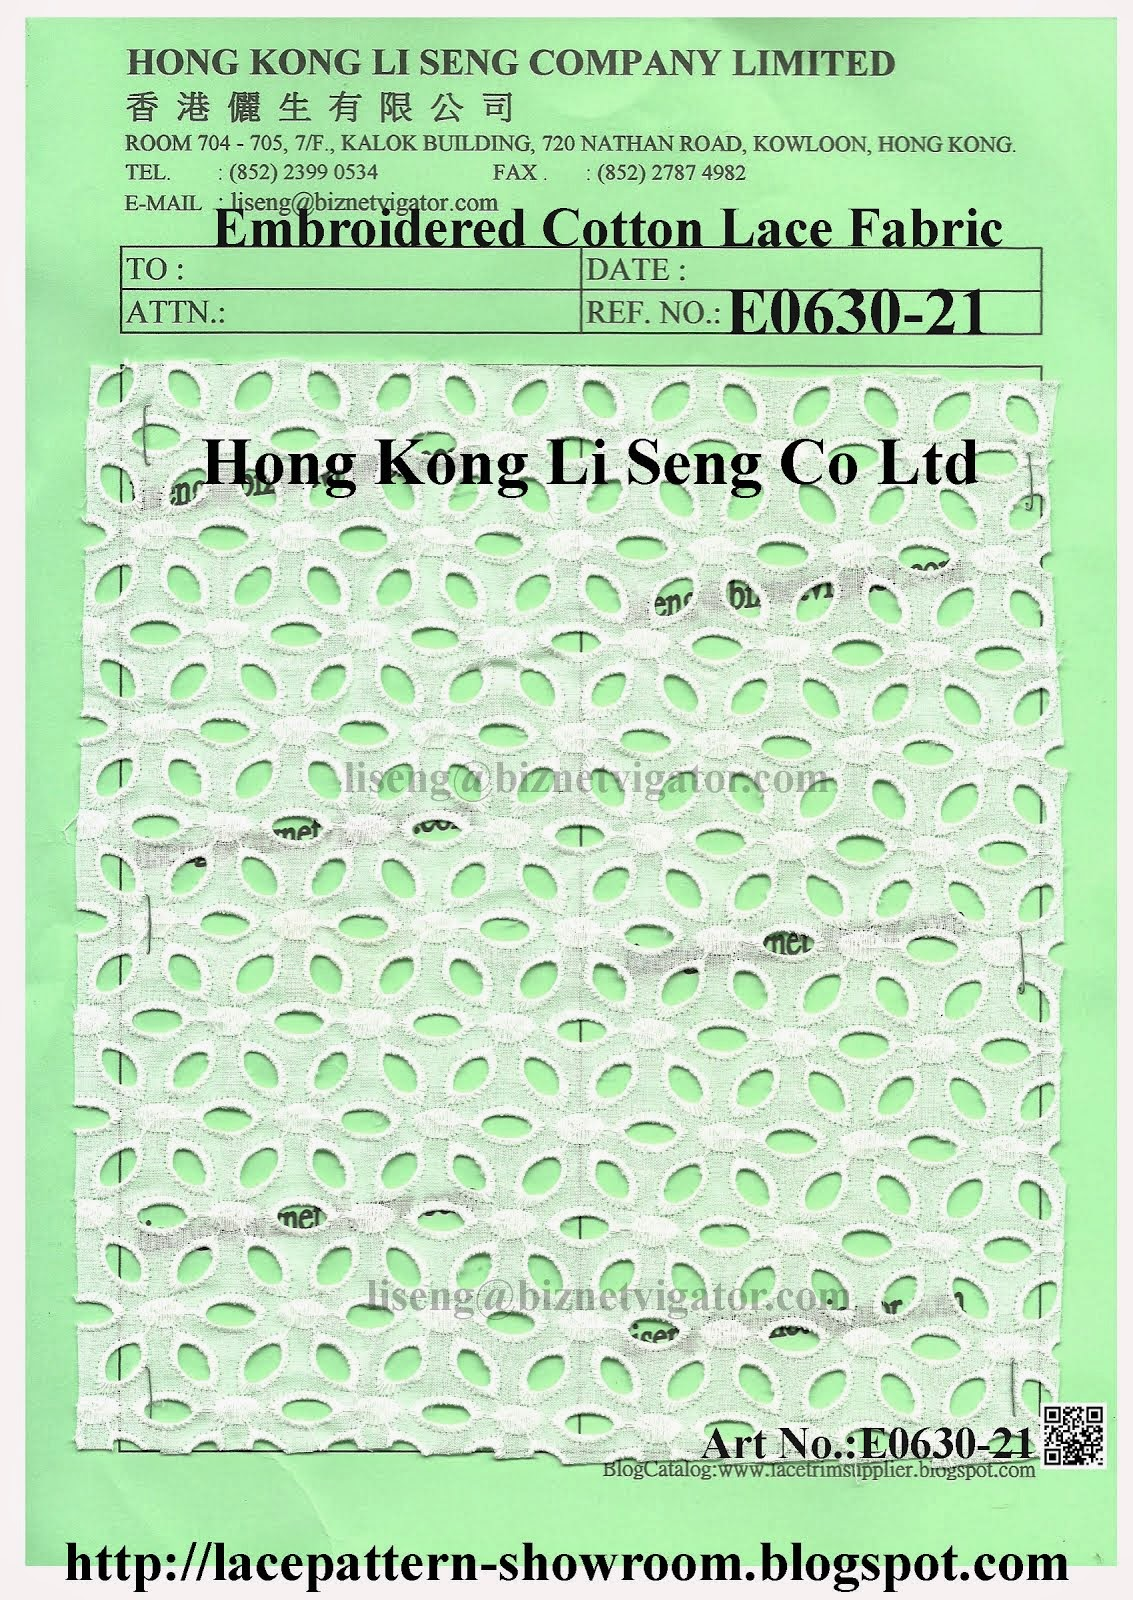 New Cotton Lace Fabric Pattern Manufacturer Wholesaler And Supplier - Hong Kong Li Seng Co Ltd